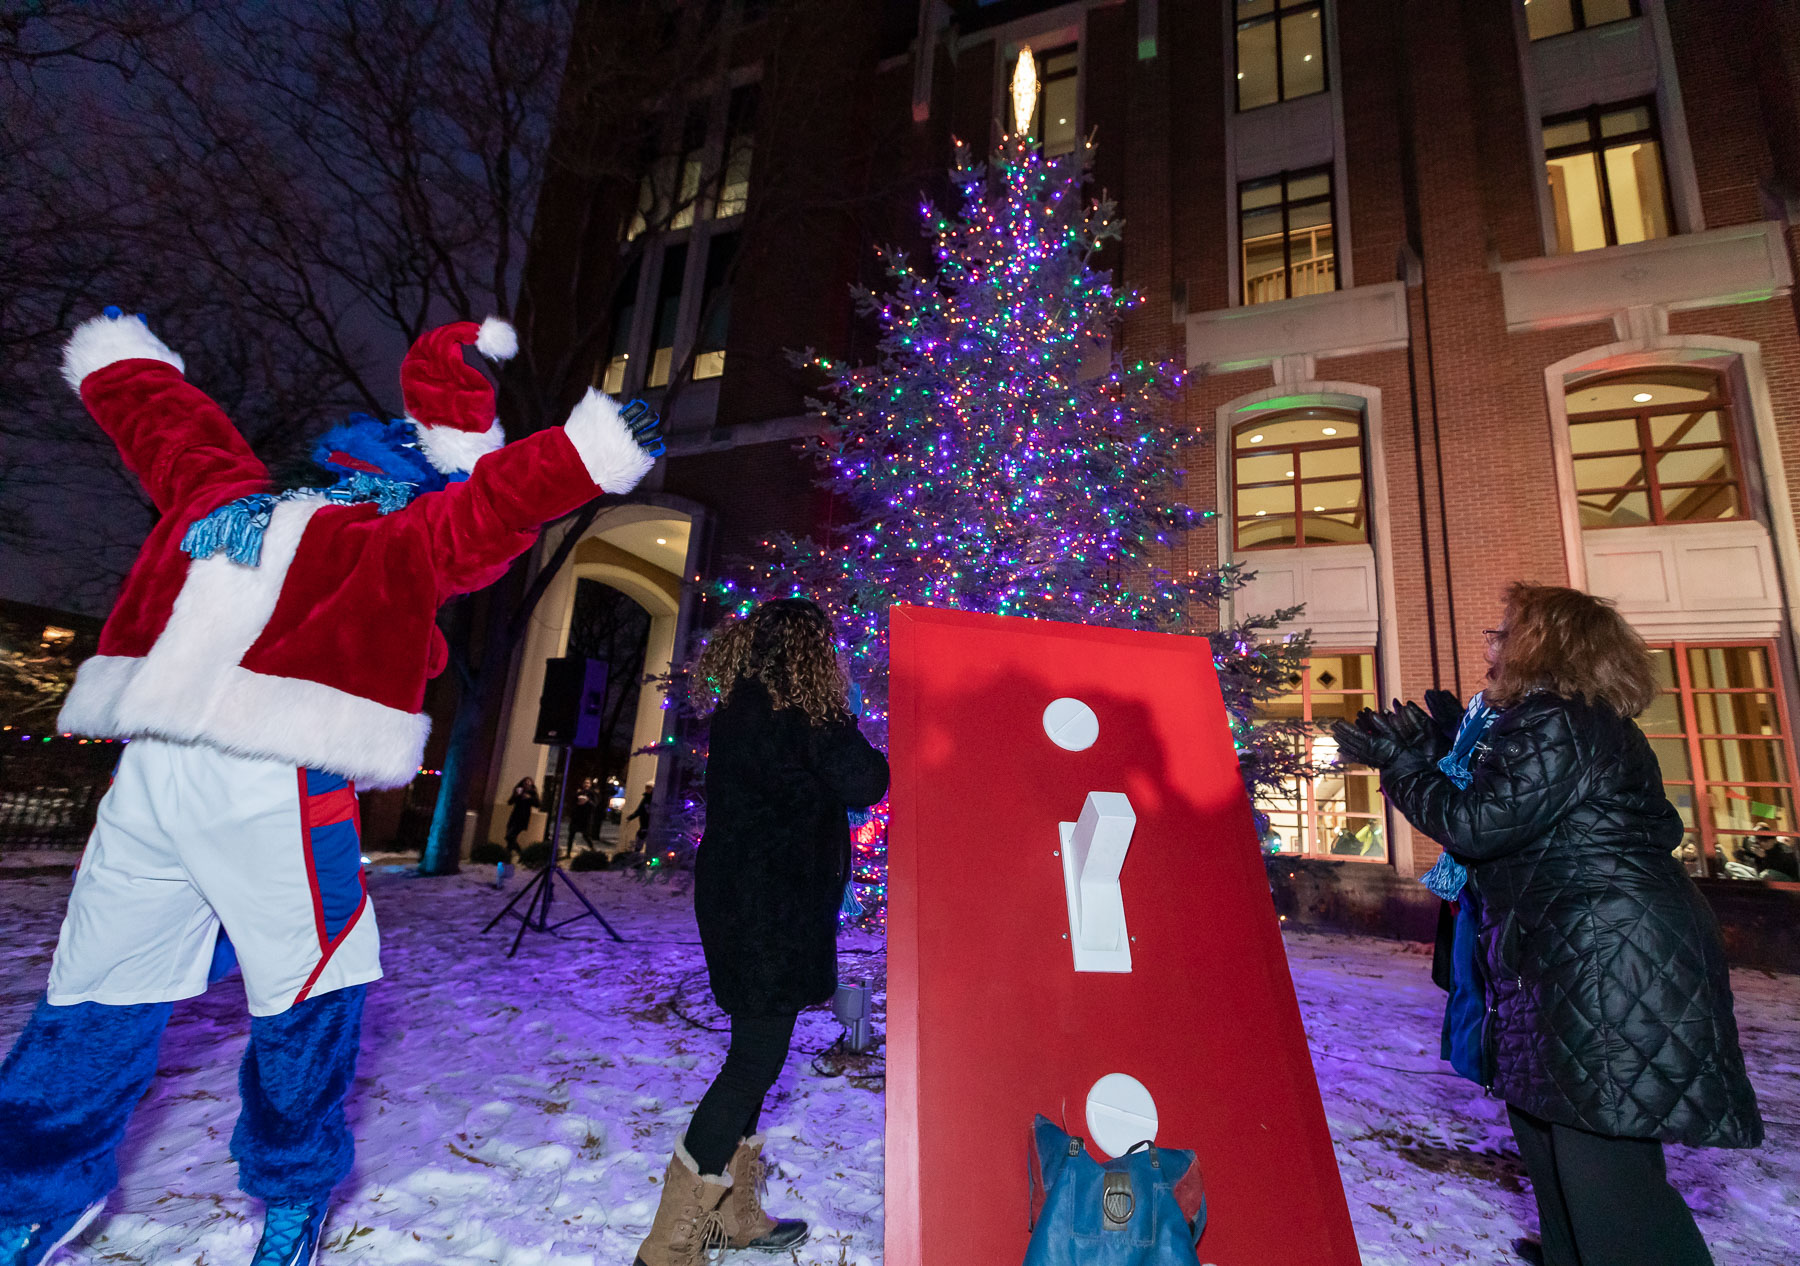 A flip of the switch and DePaul's beacon is lit to guide students back from their holiday break in January. (DePaul University/Jeff Carrion)